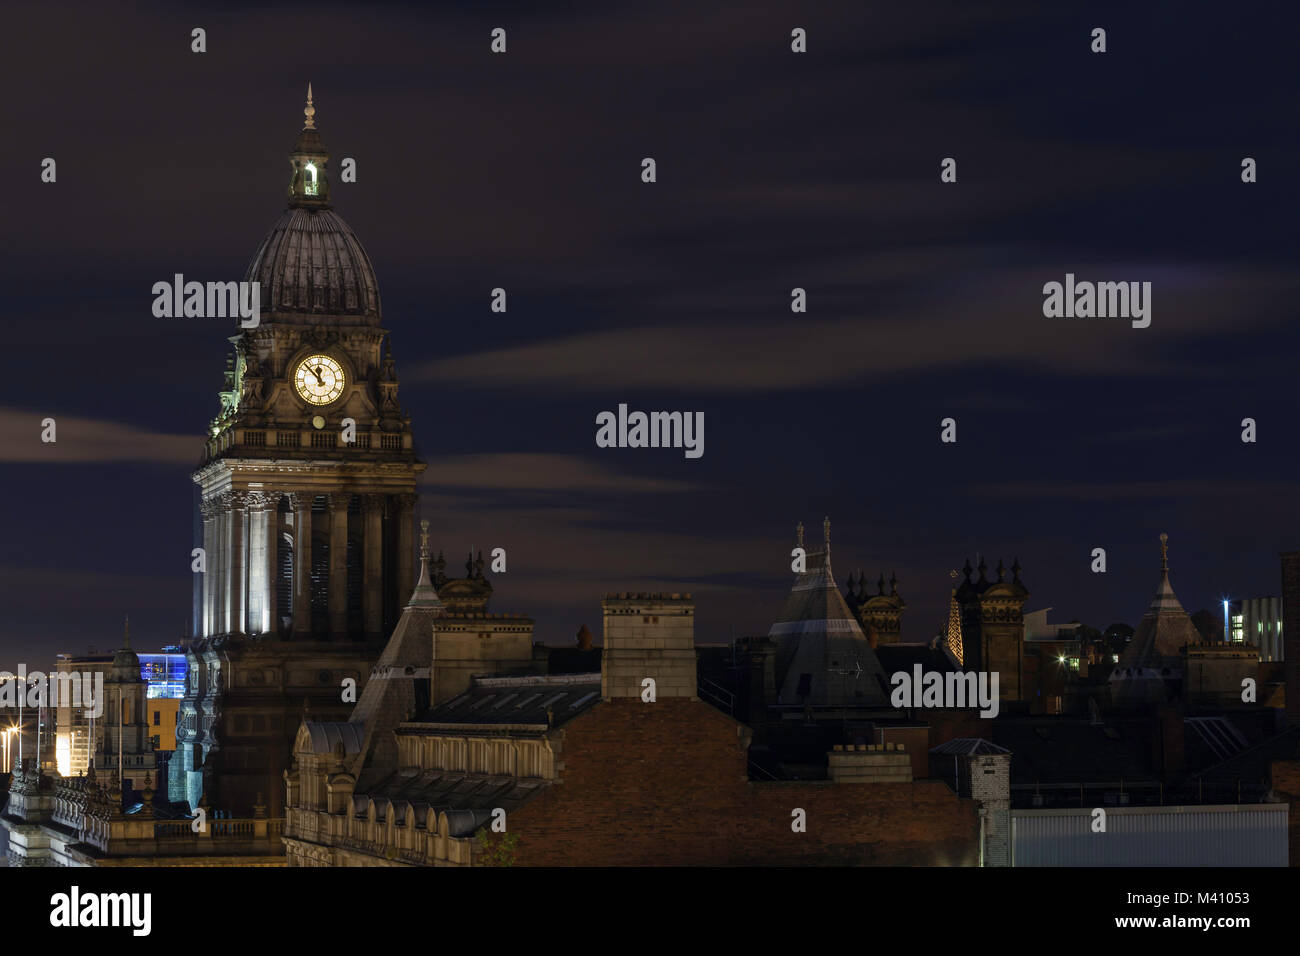 The Leeds Town Hall at night - Stock Image